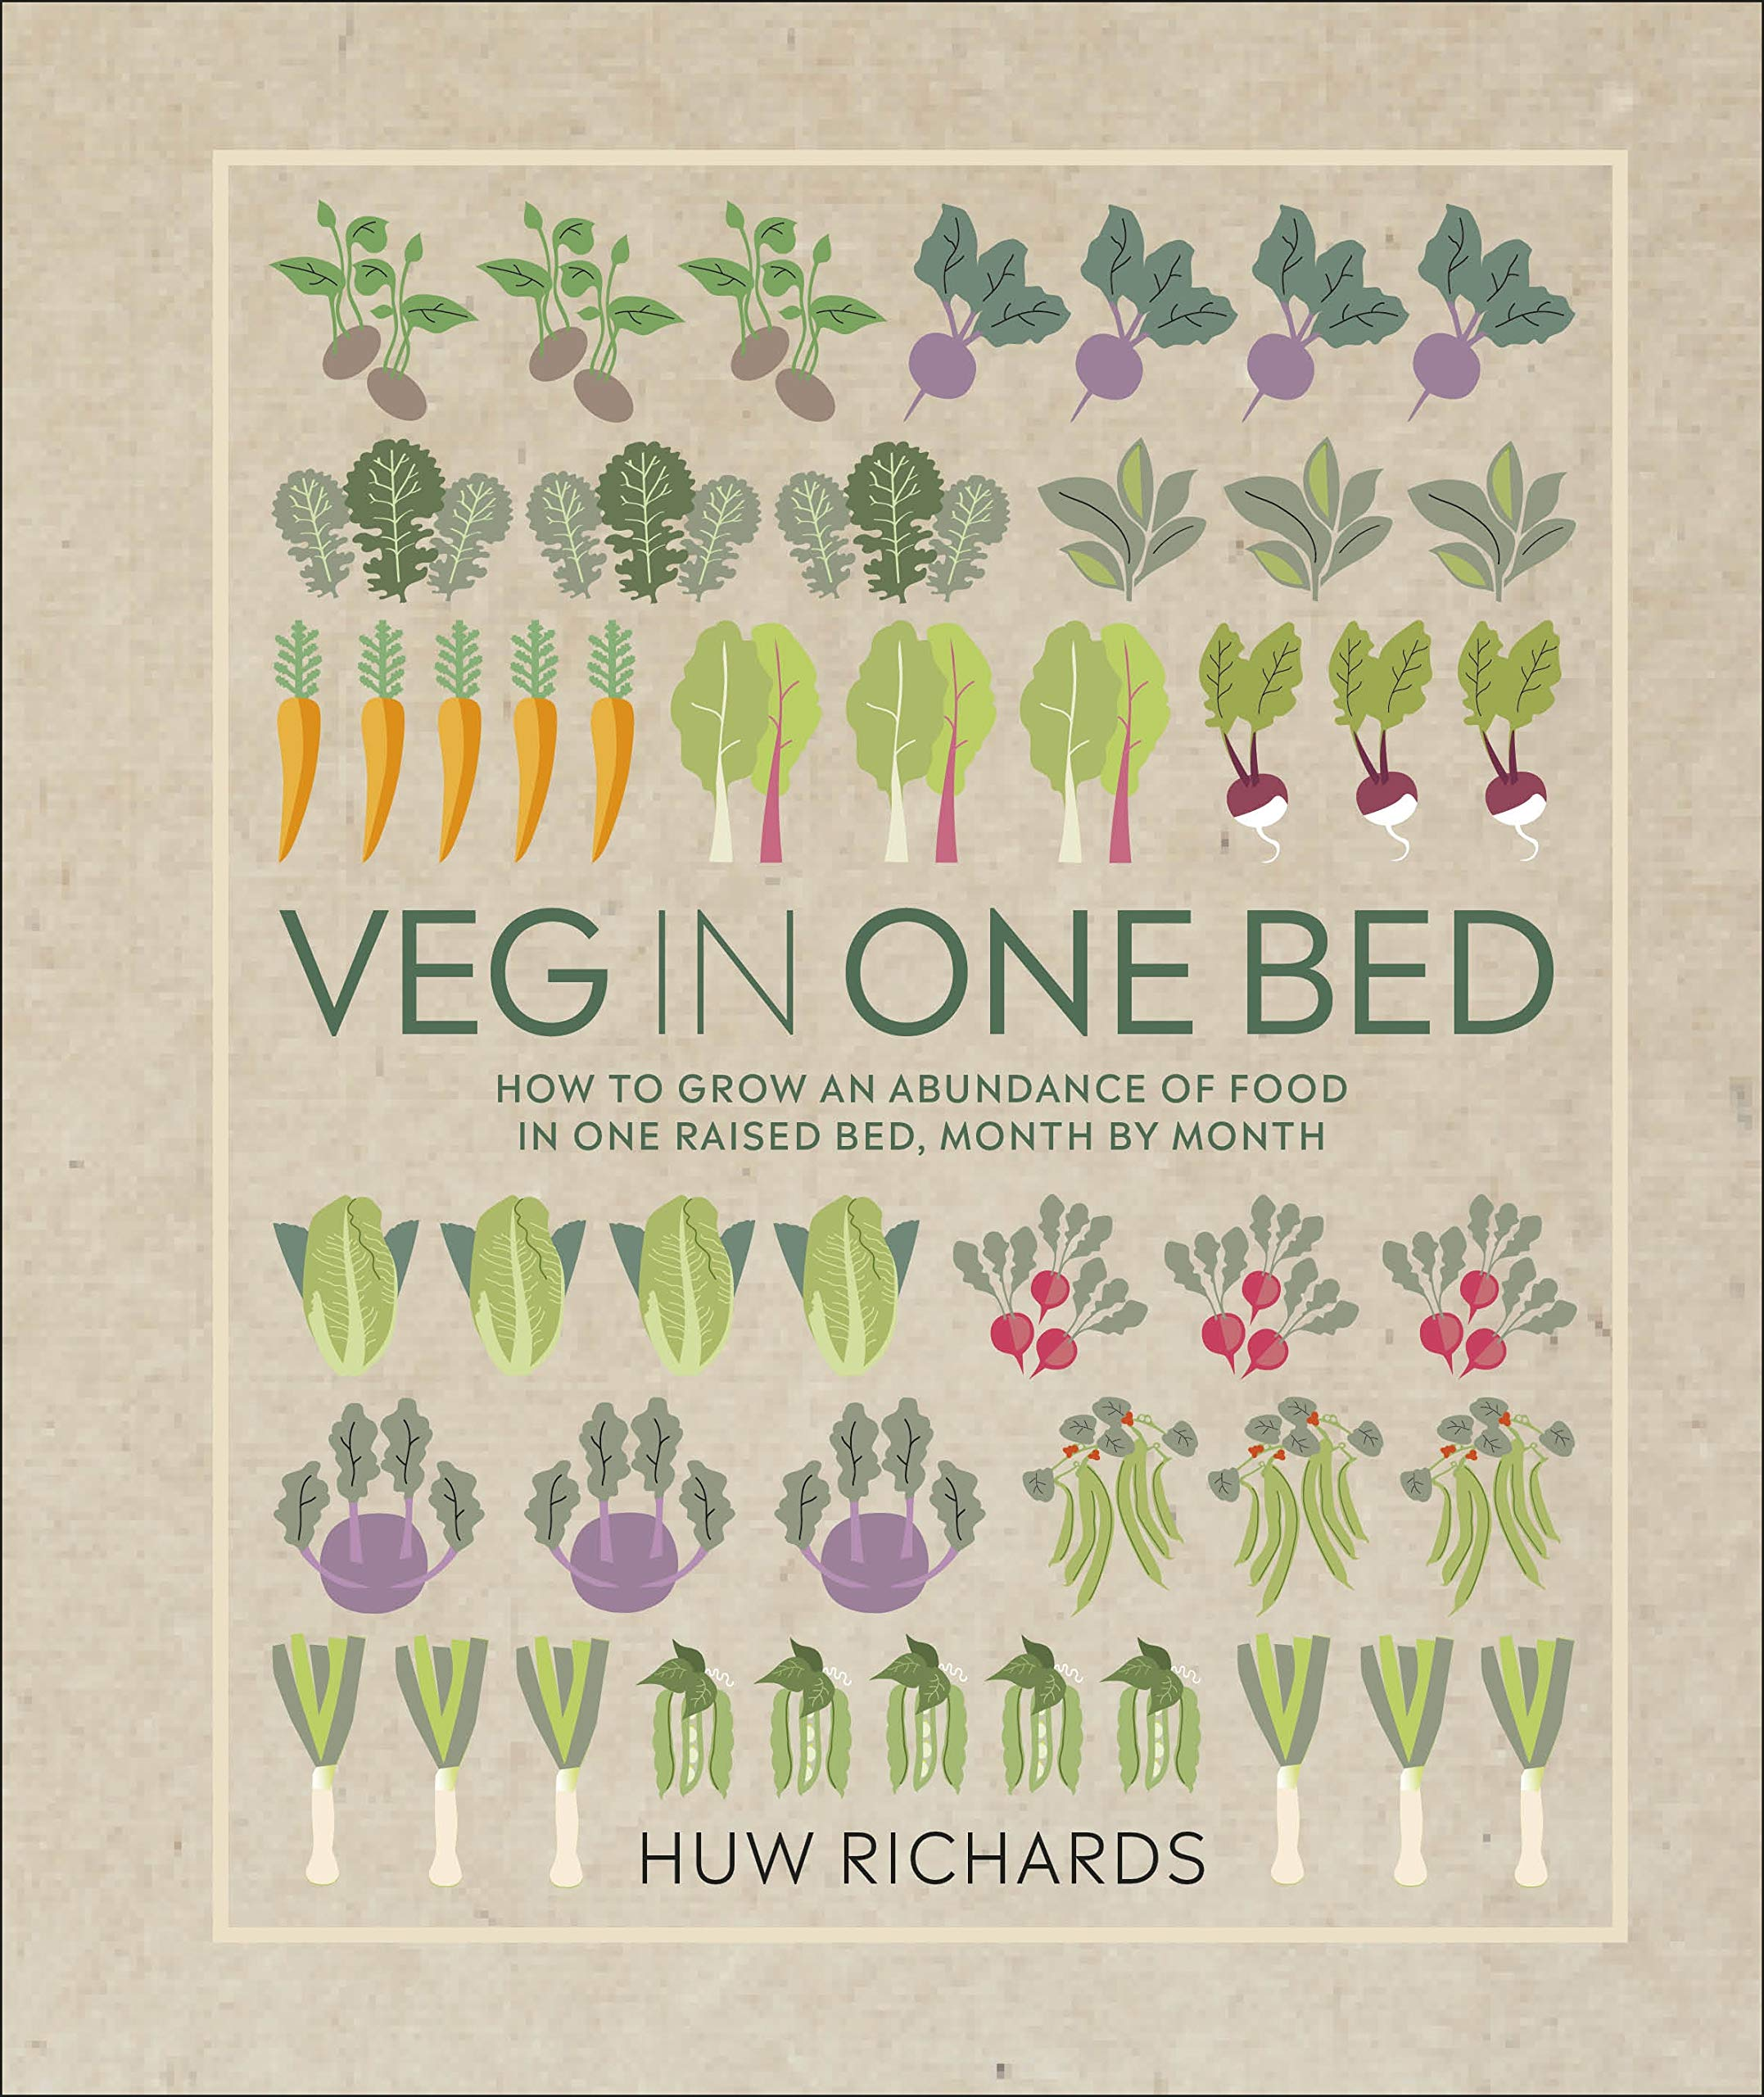 Veg in One Bed: How to Grow an Abundance of Food in One Raised Bed, Month by Month by Huw Richards |